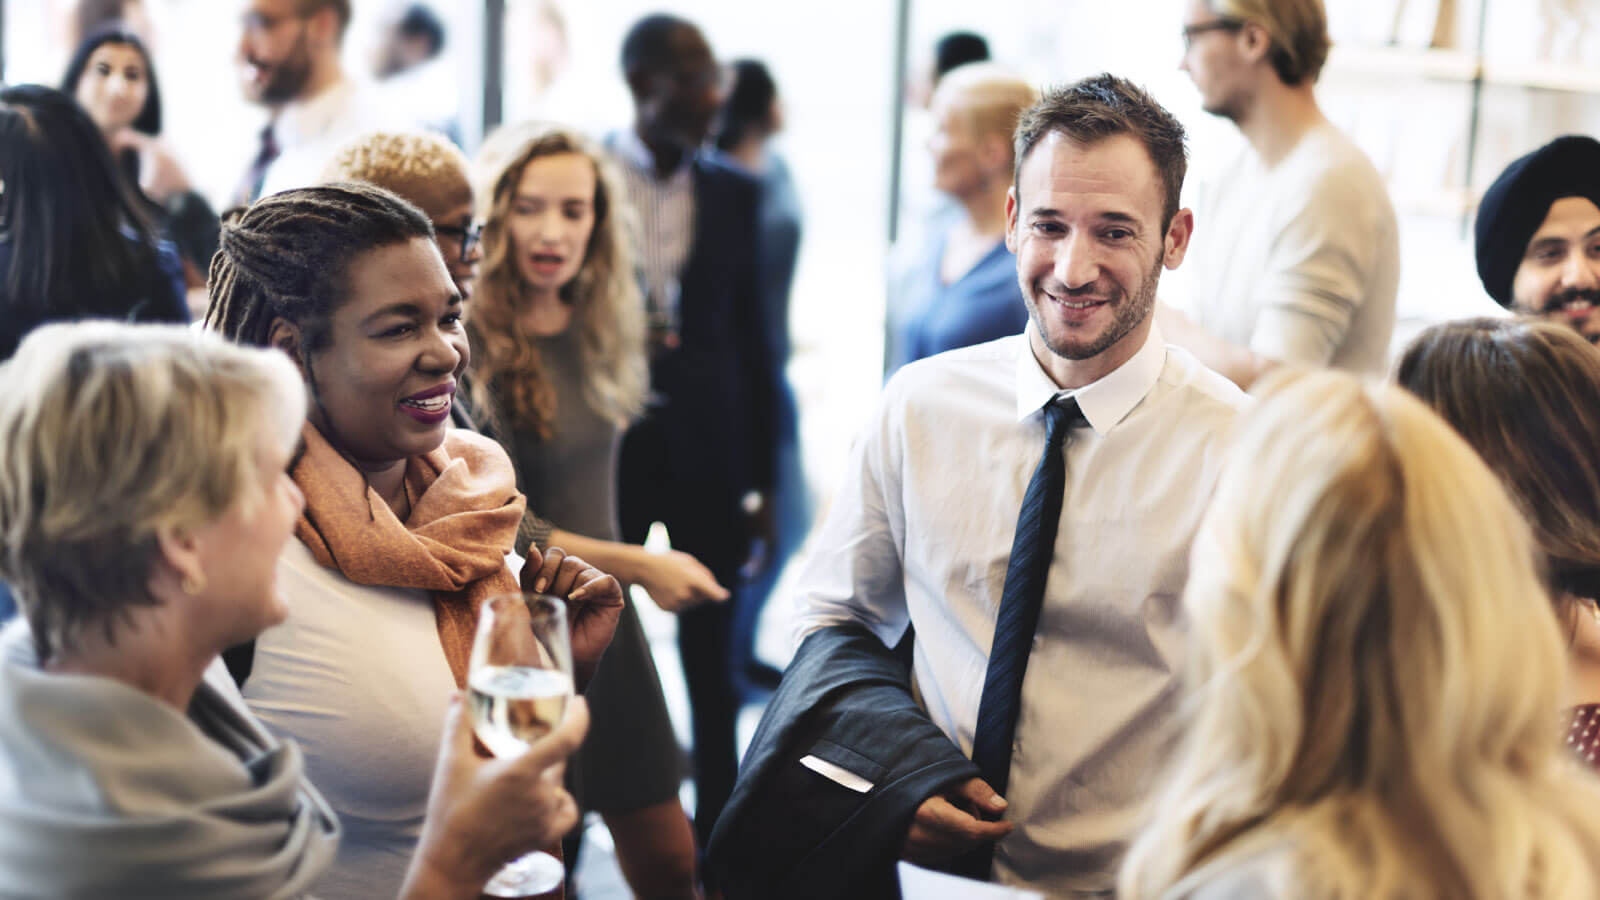 How To Make The Most Of Your Next Networking Event